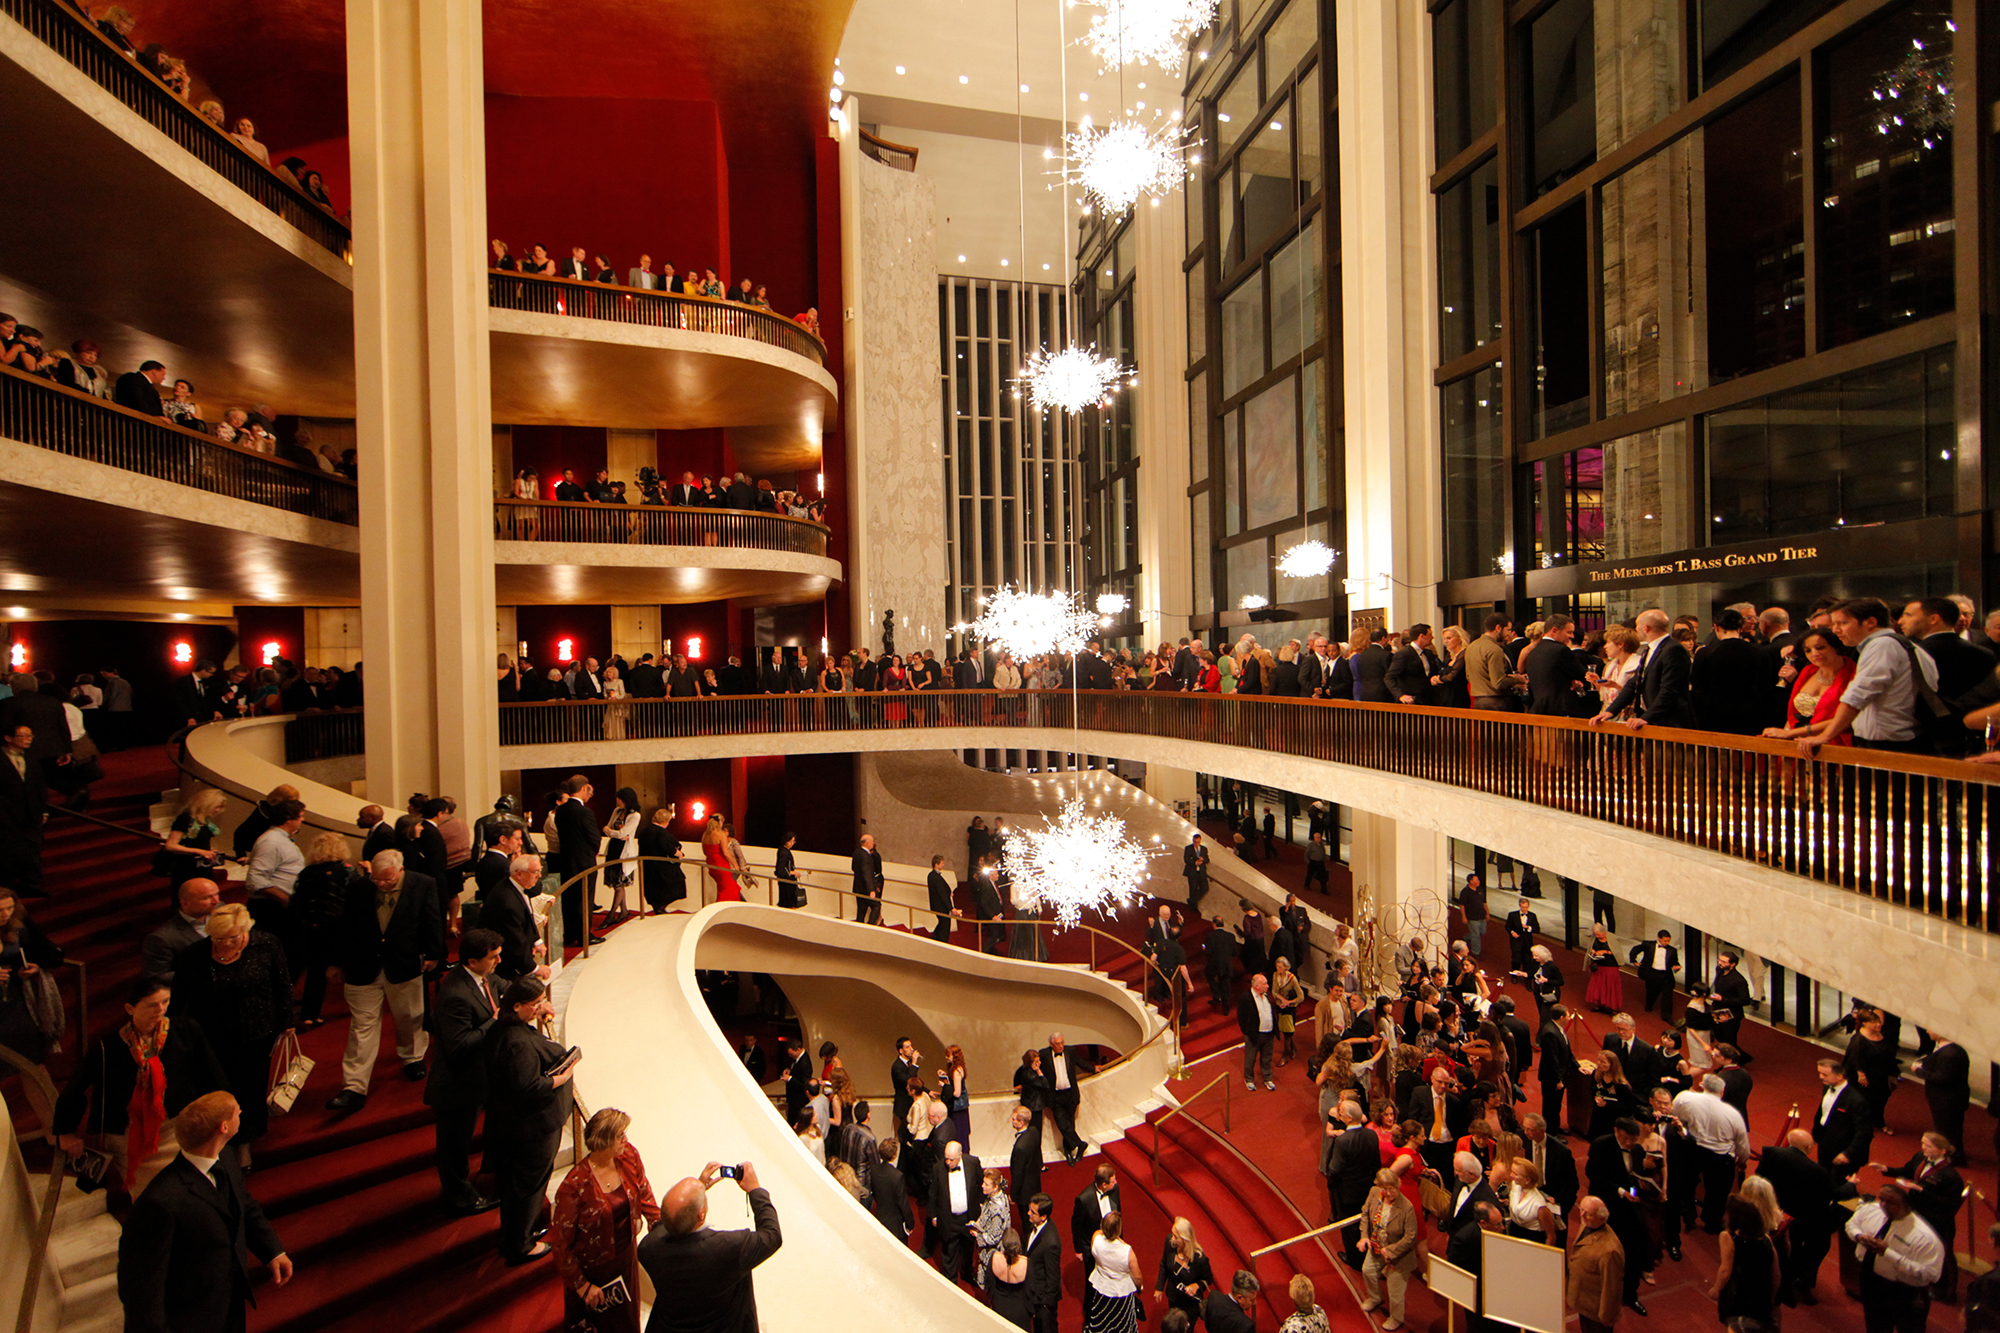 The Metropolitan Opera House, New York